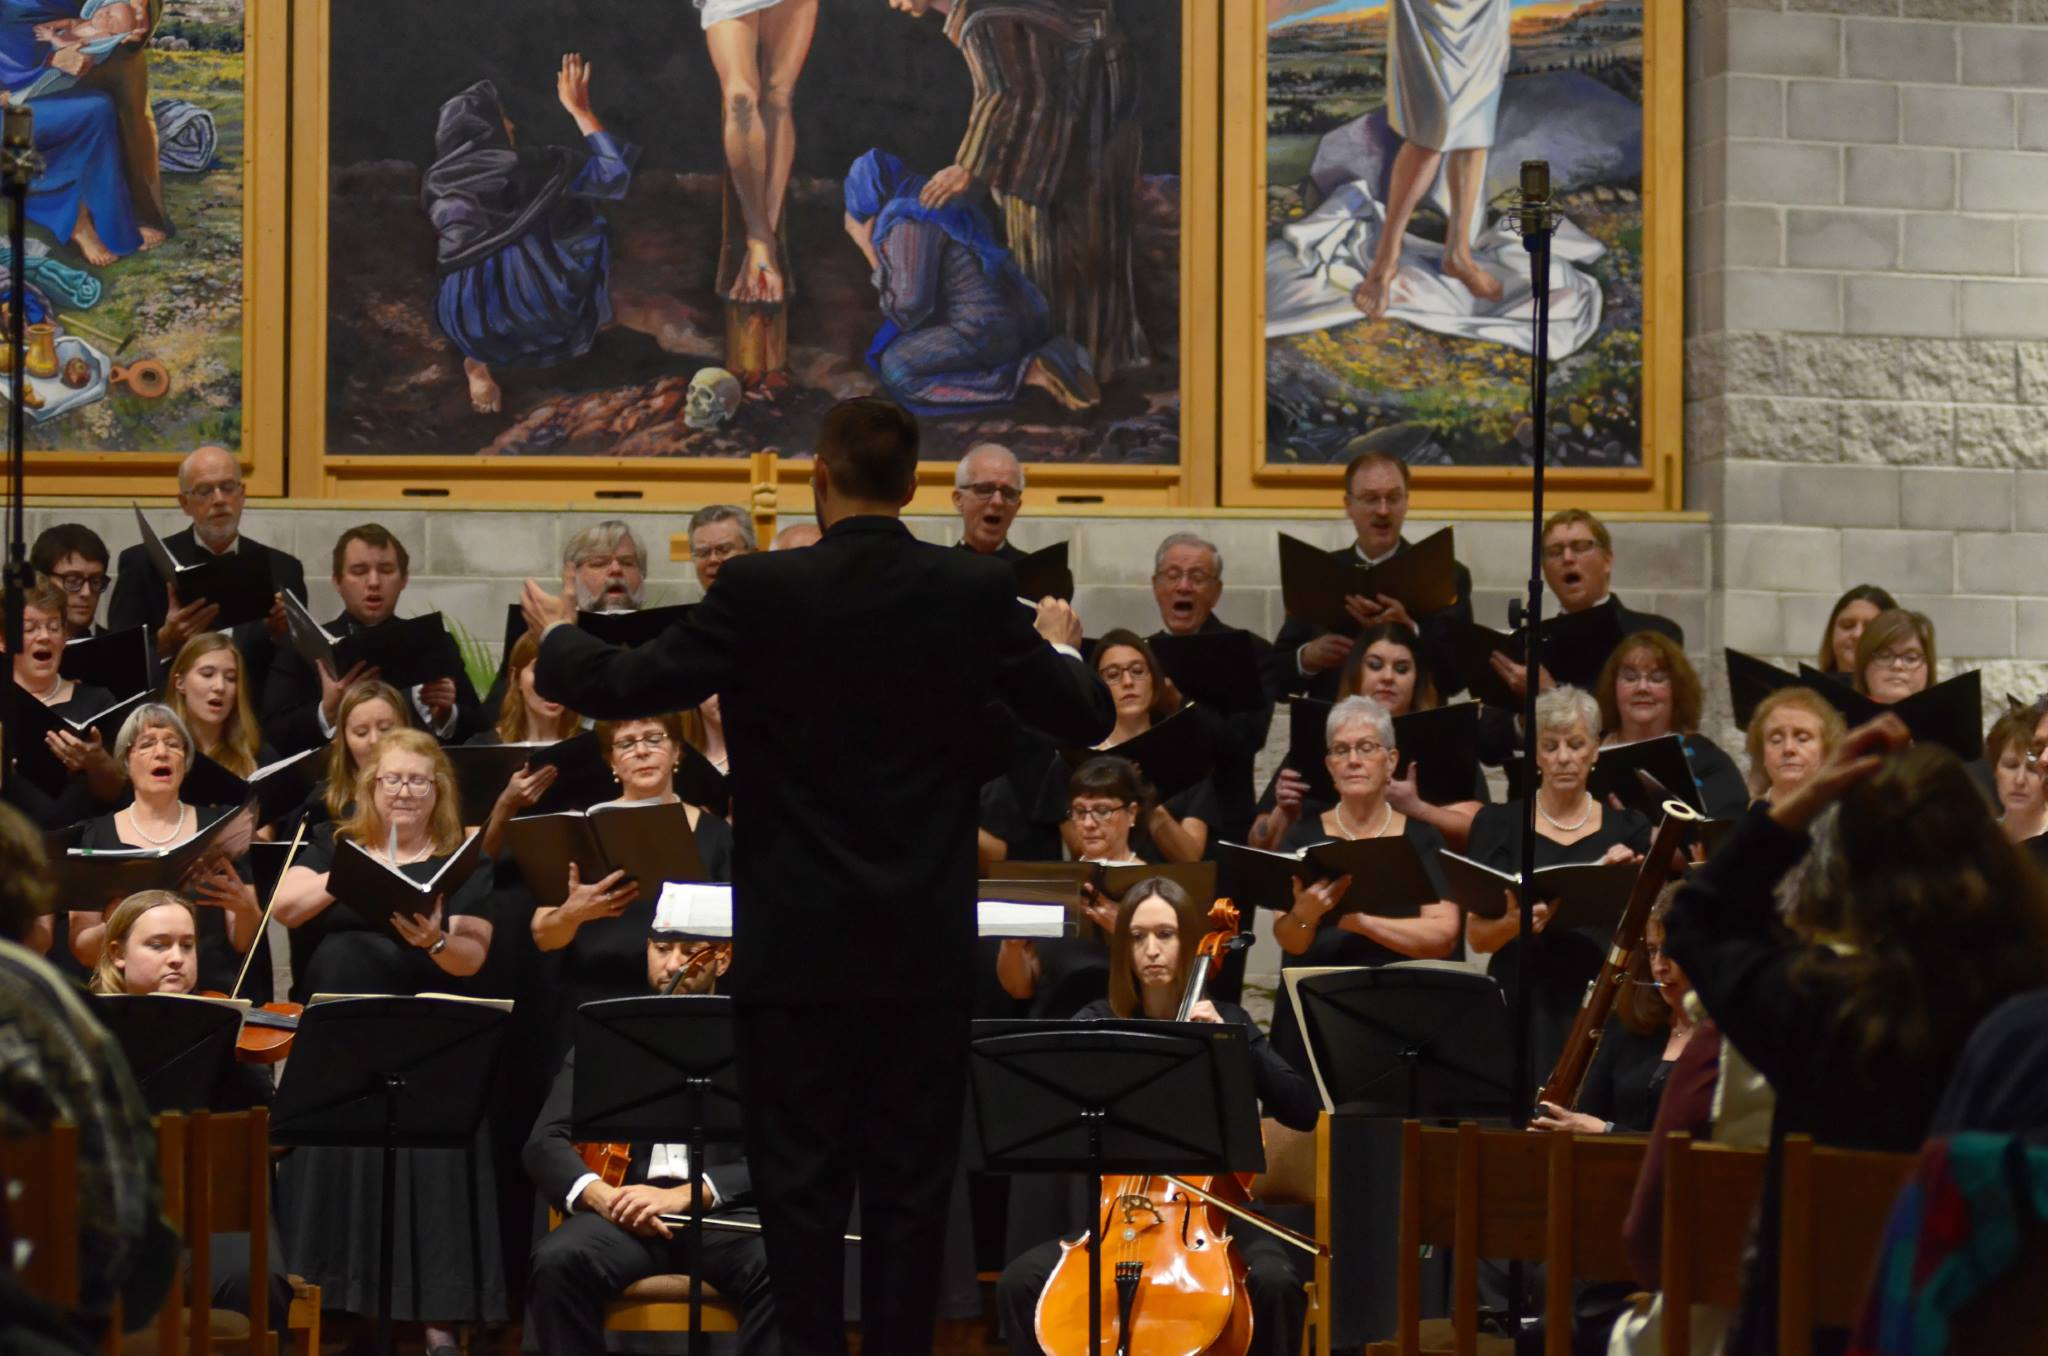 Permalink to:About Minnesota Valley Chorale